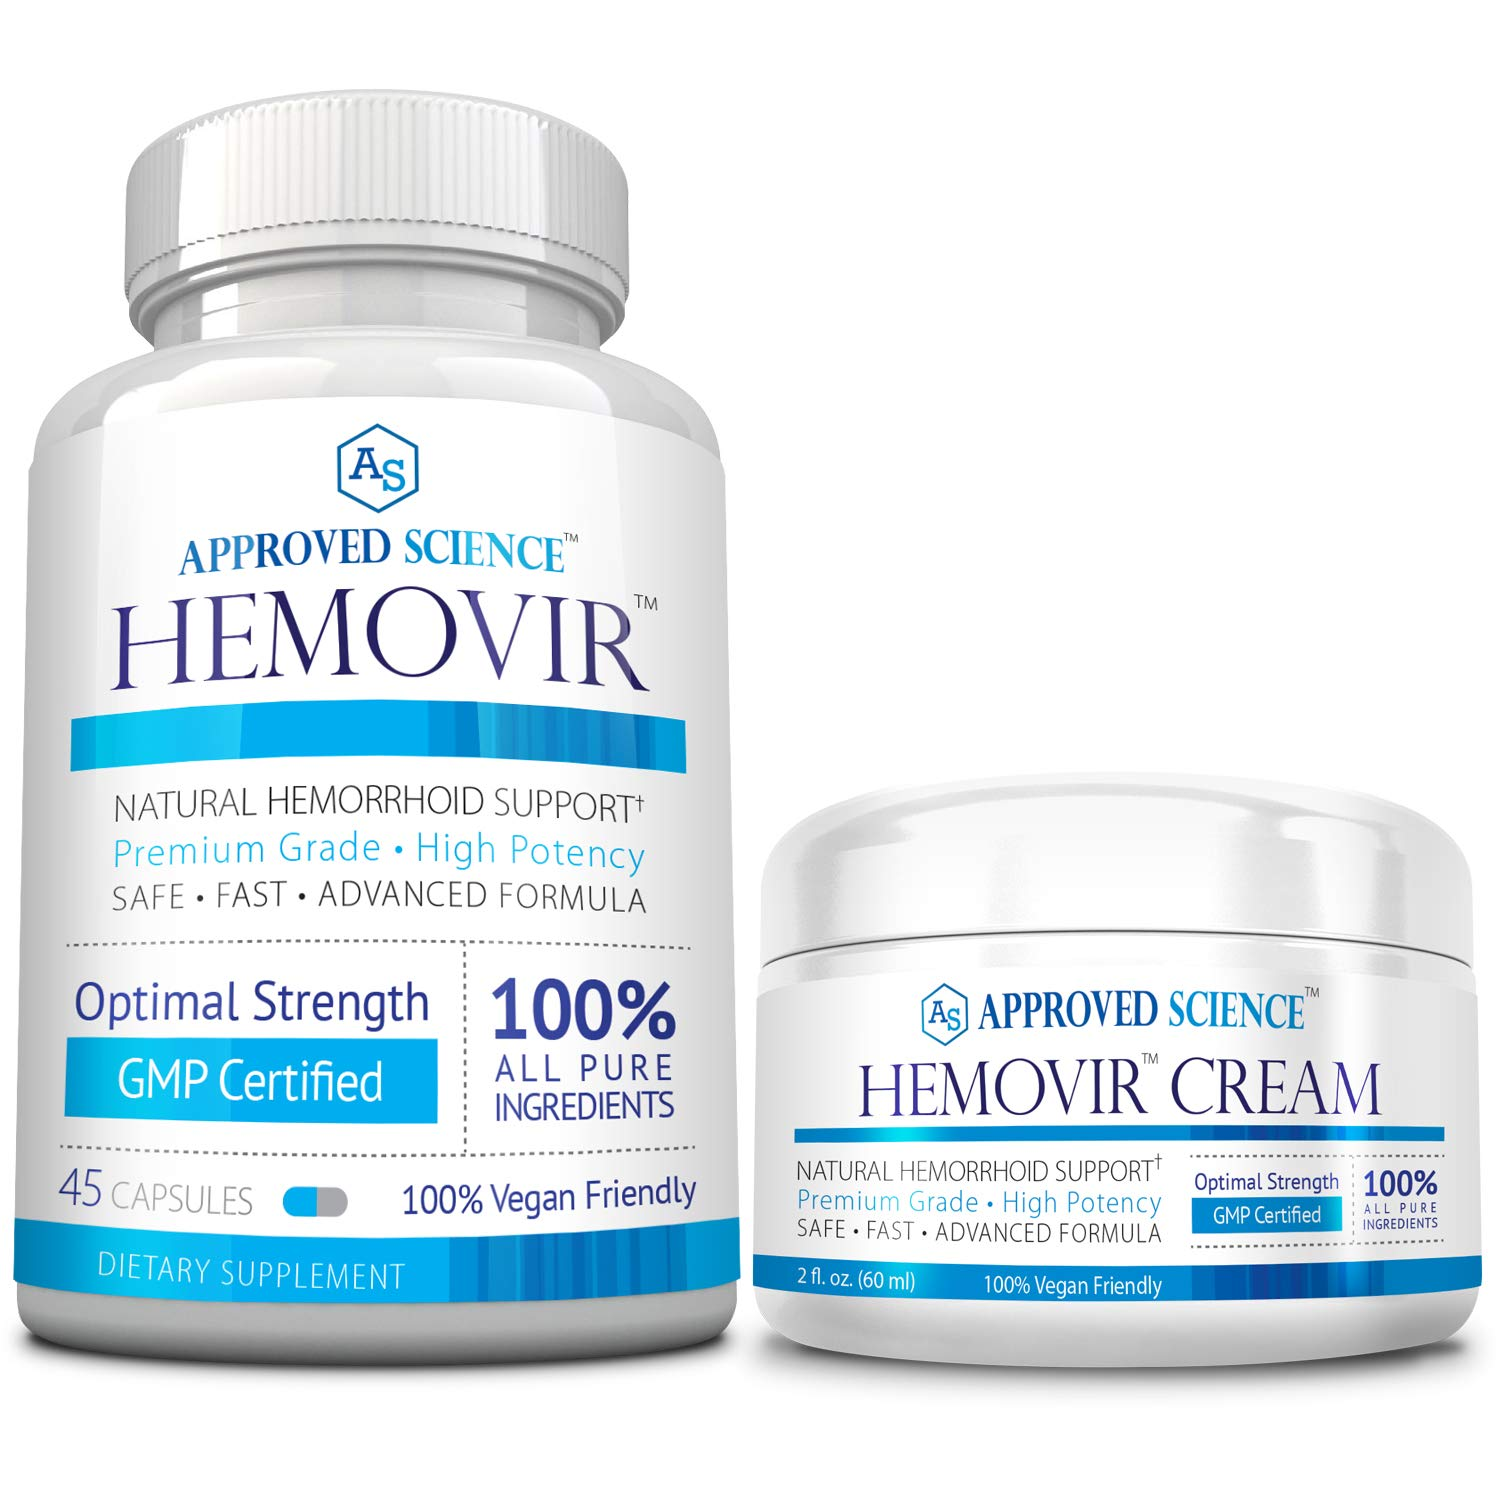 Hemovir - Best Hemorrhoid & Fissure Treatment for Rapid Healing; Reduce Itching, Irritation, Bleeding & Burning 100% Natural Ingredients - 1 Bottle & 1 Cream by Approved Science